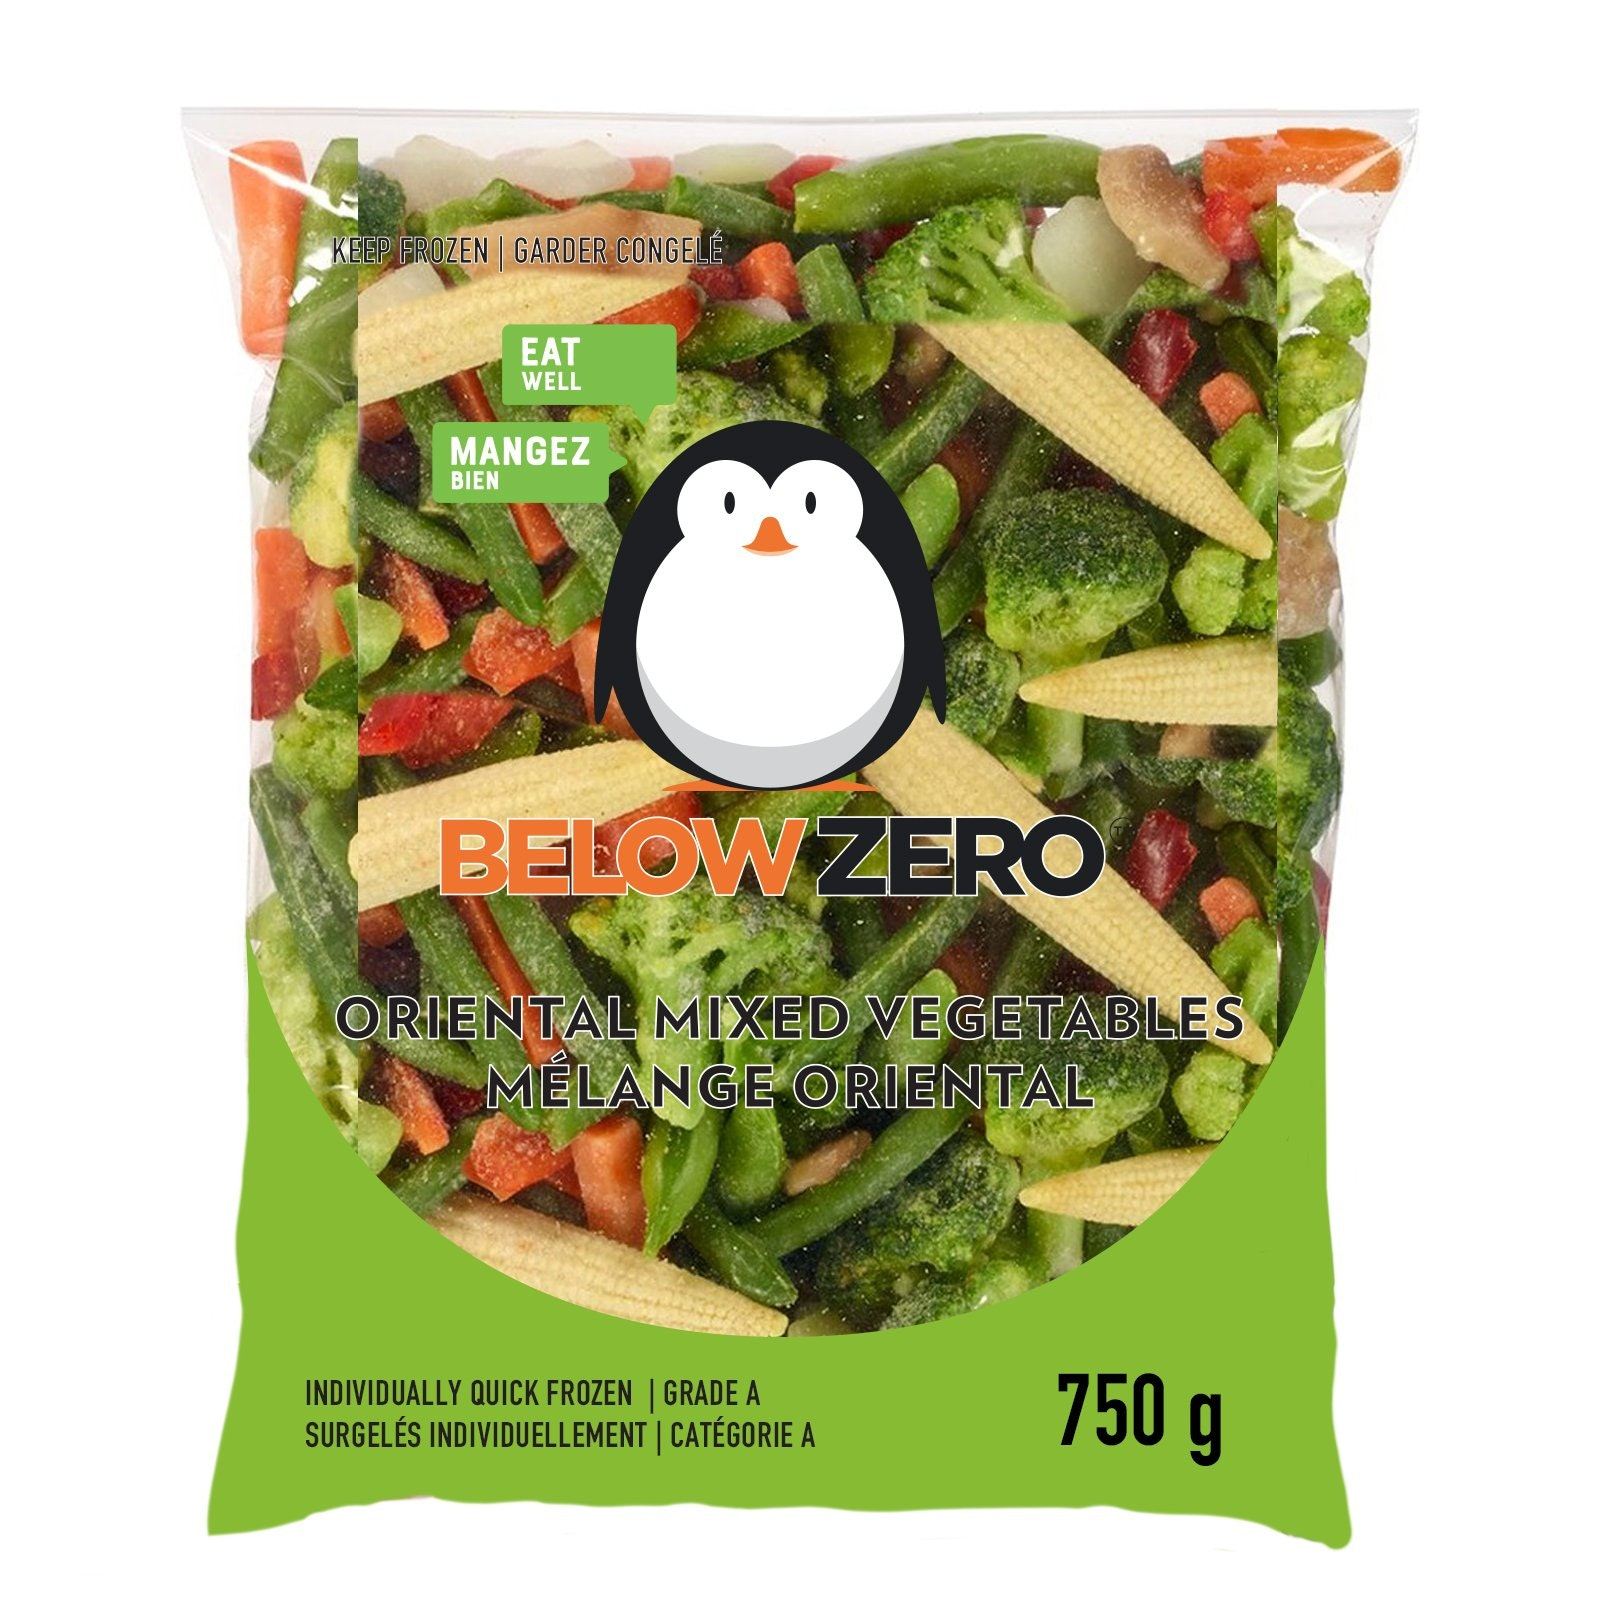 BELOW ZERO Oriental Mixed Vegetables